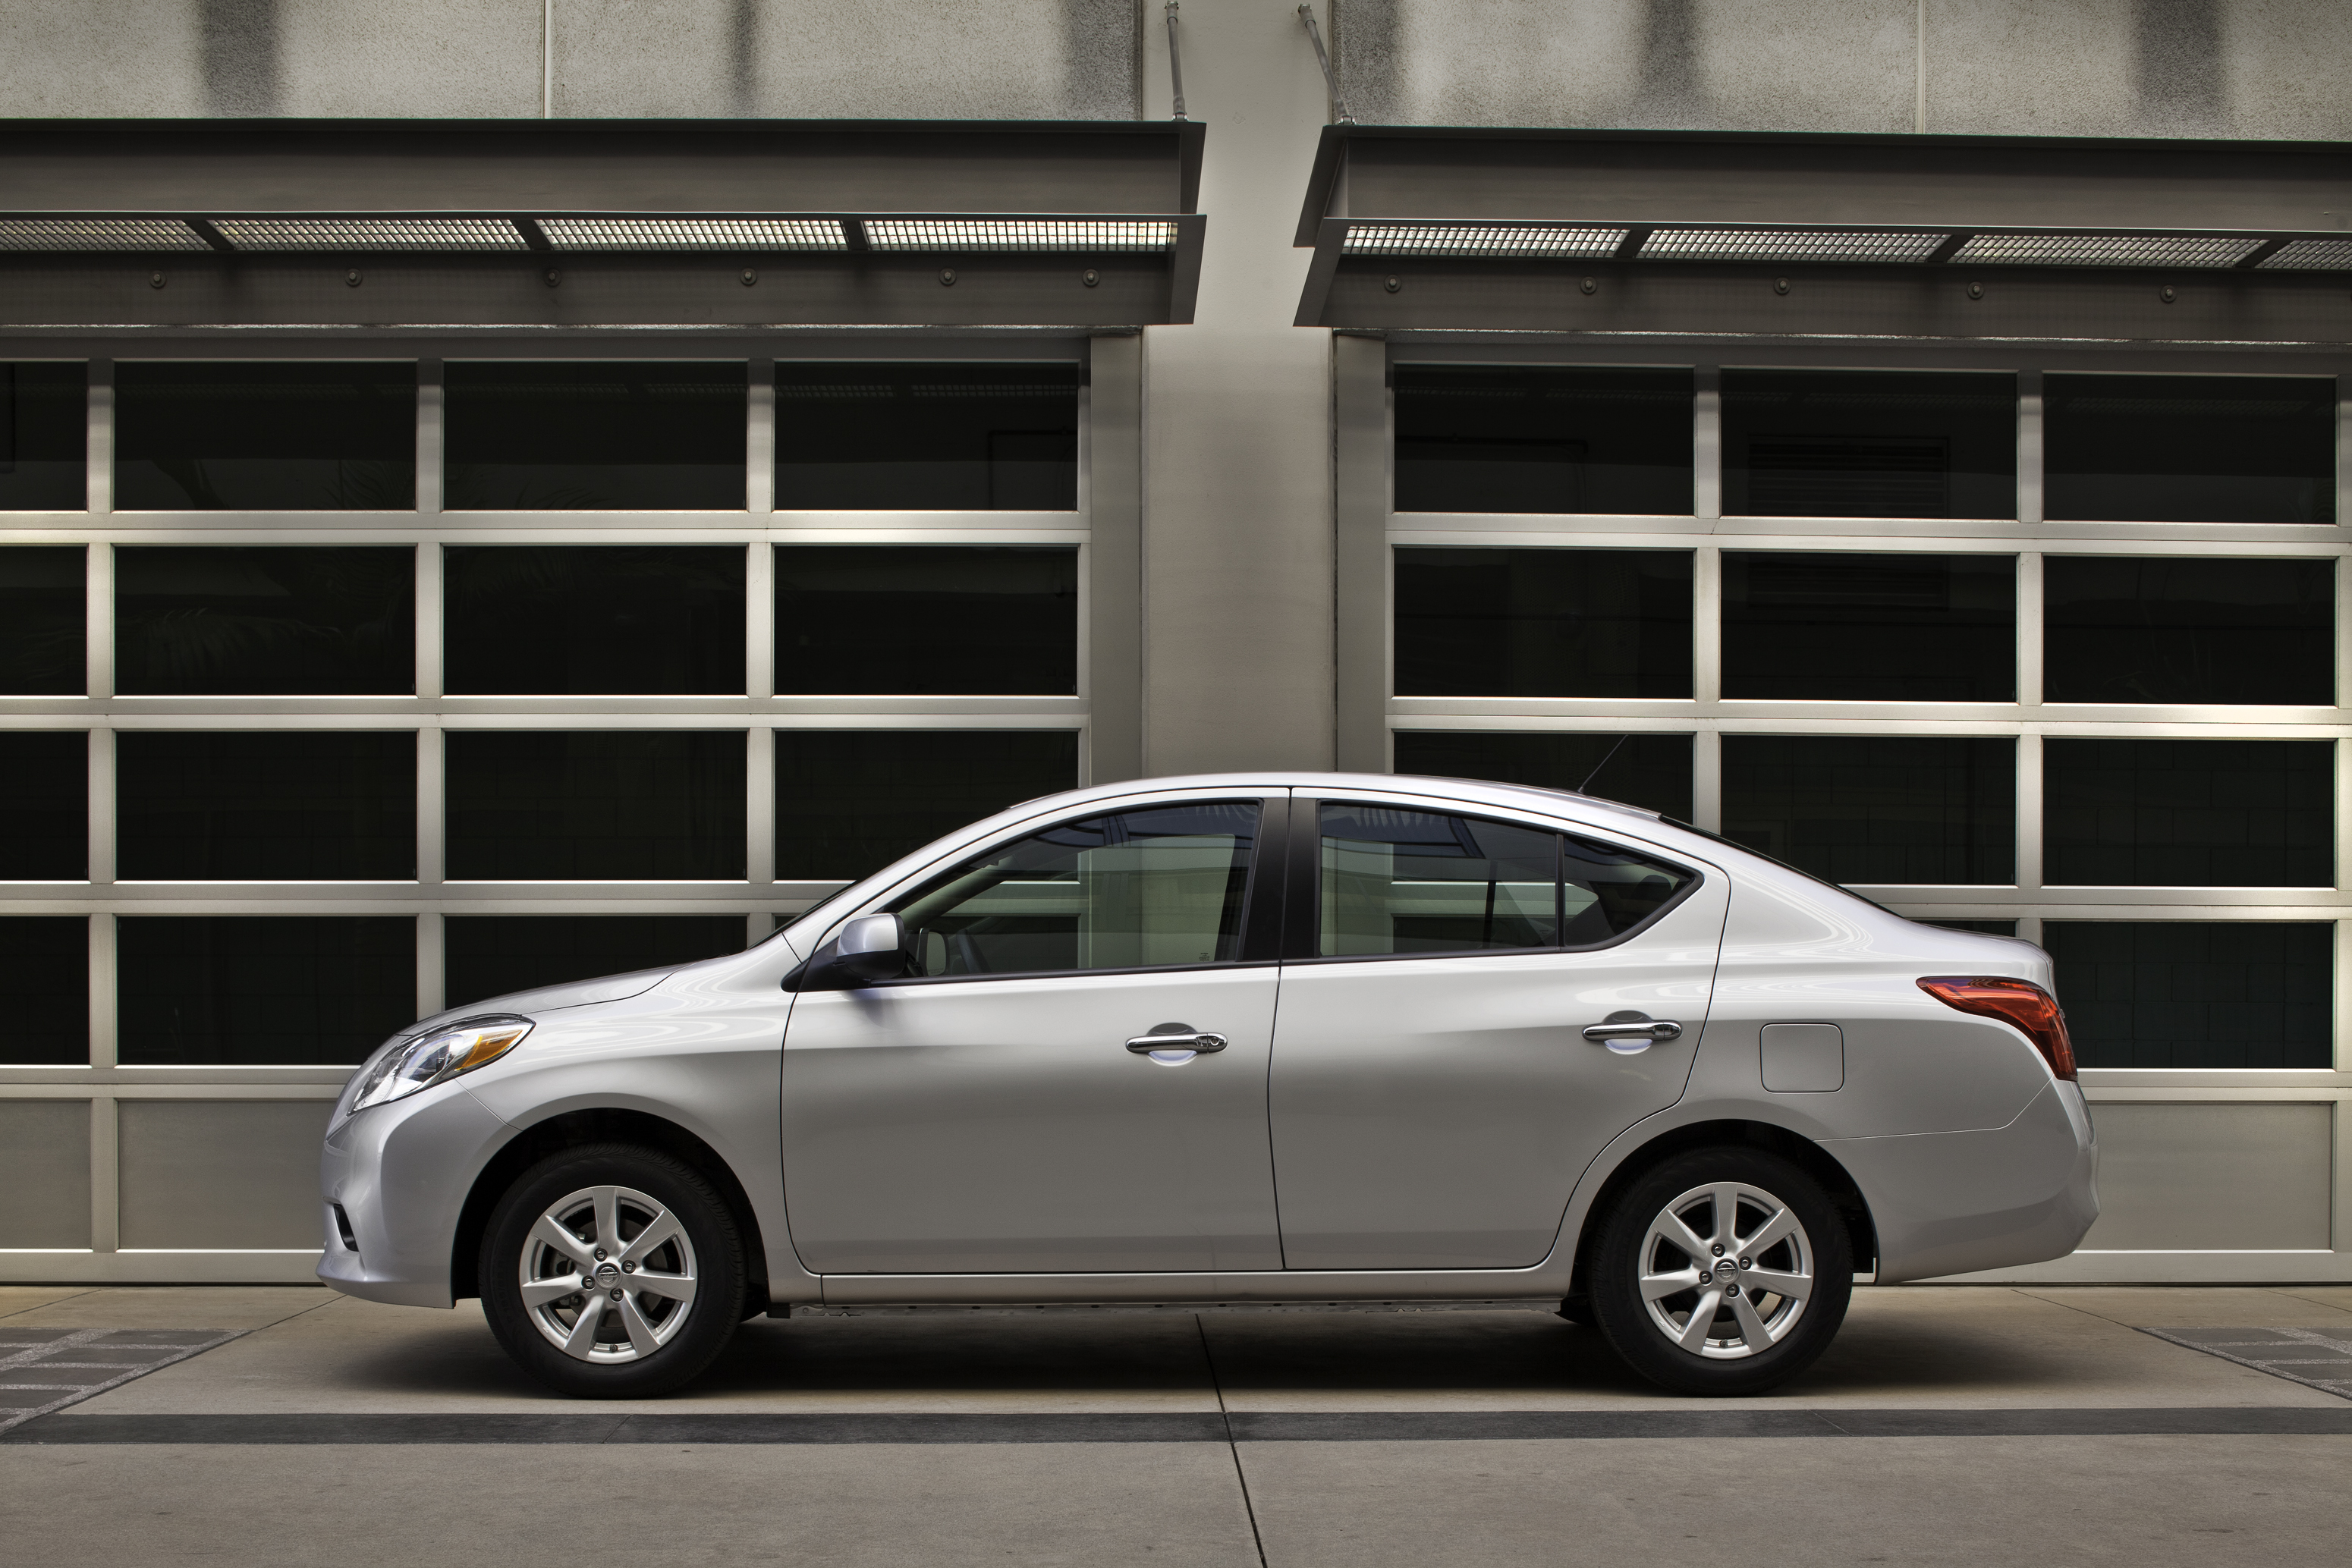 Captivating First Test: 2012 Nissan Versa SL